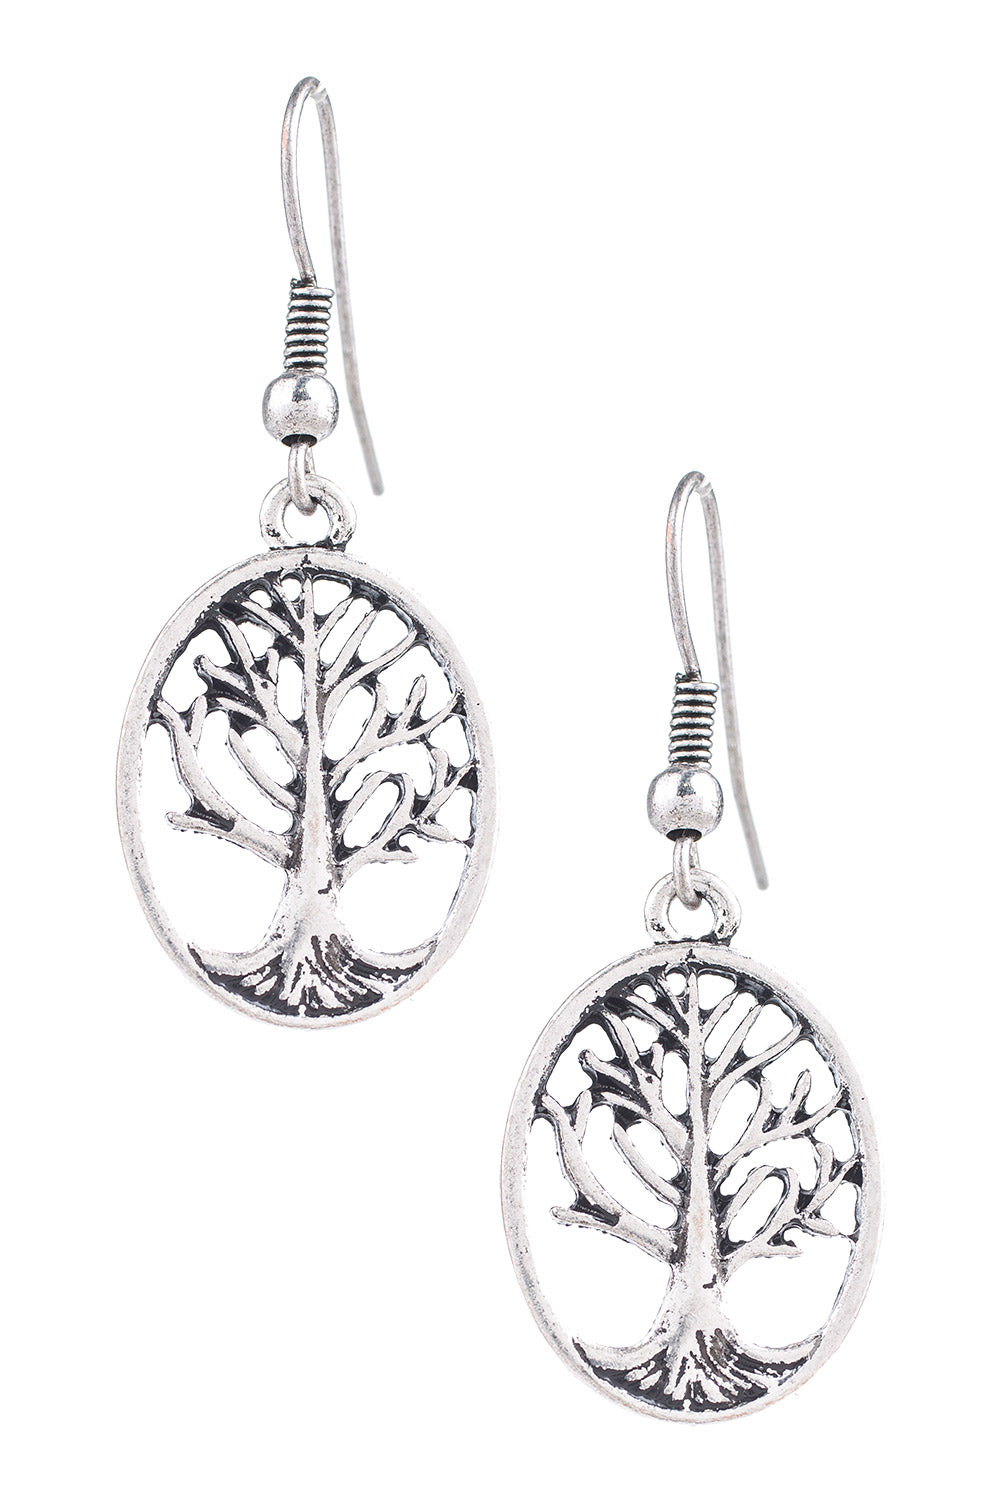 Type 2 Deep Roots Earrings